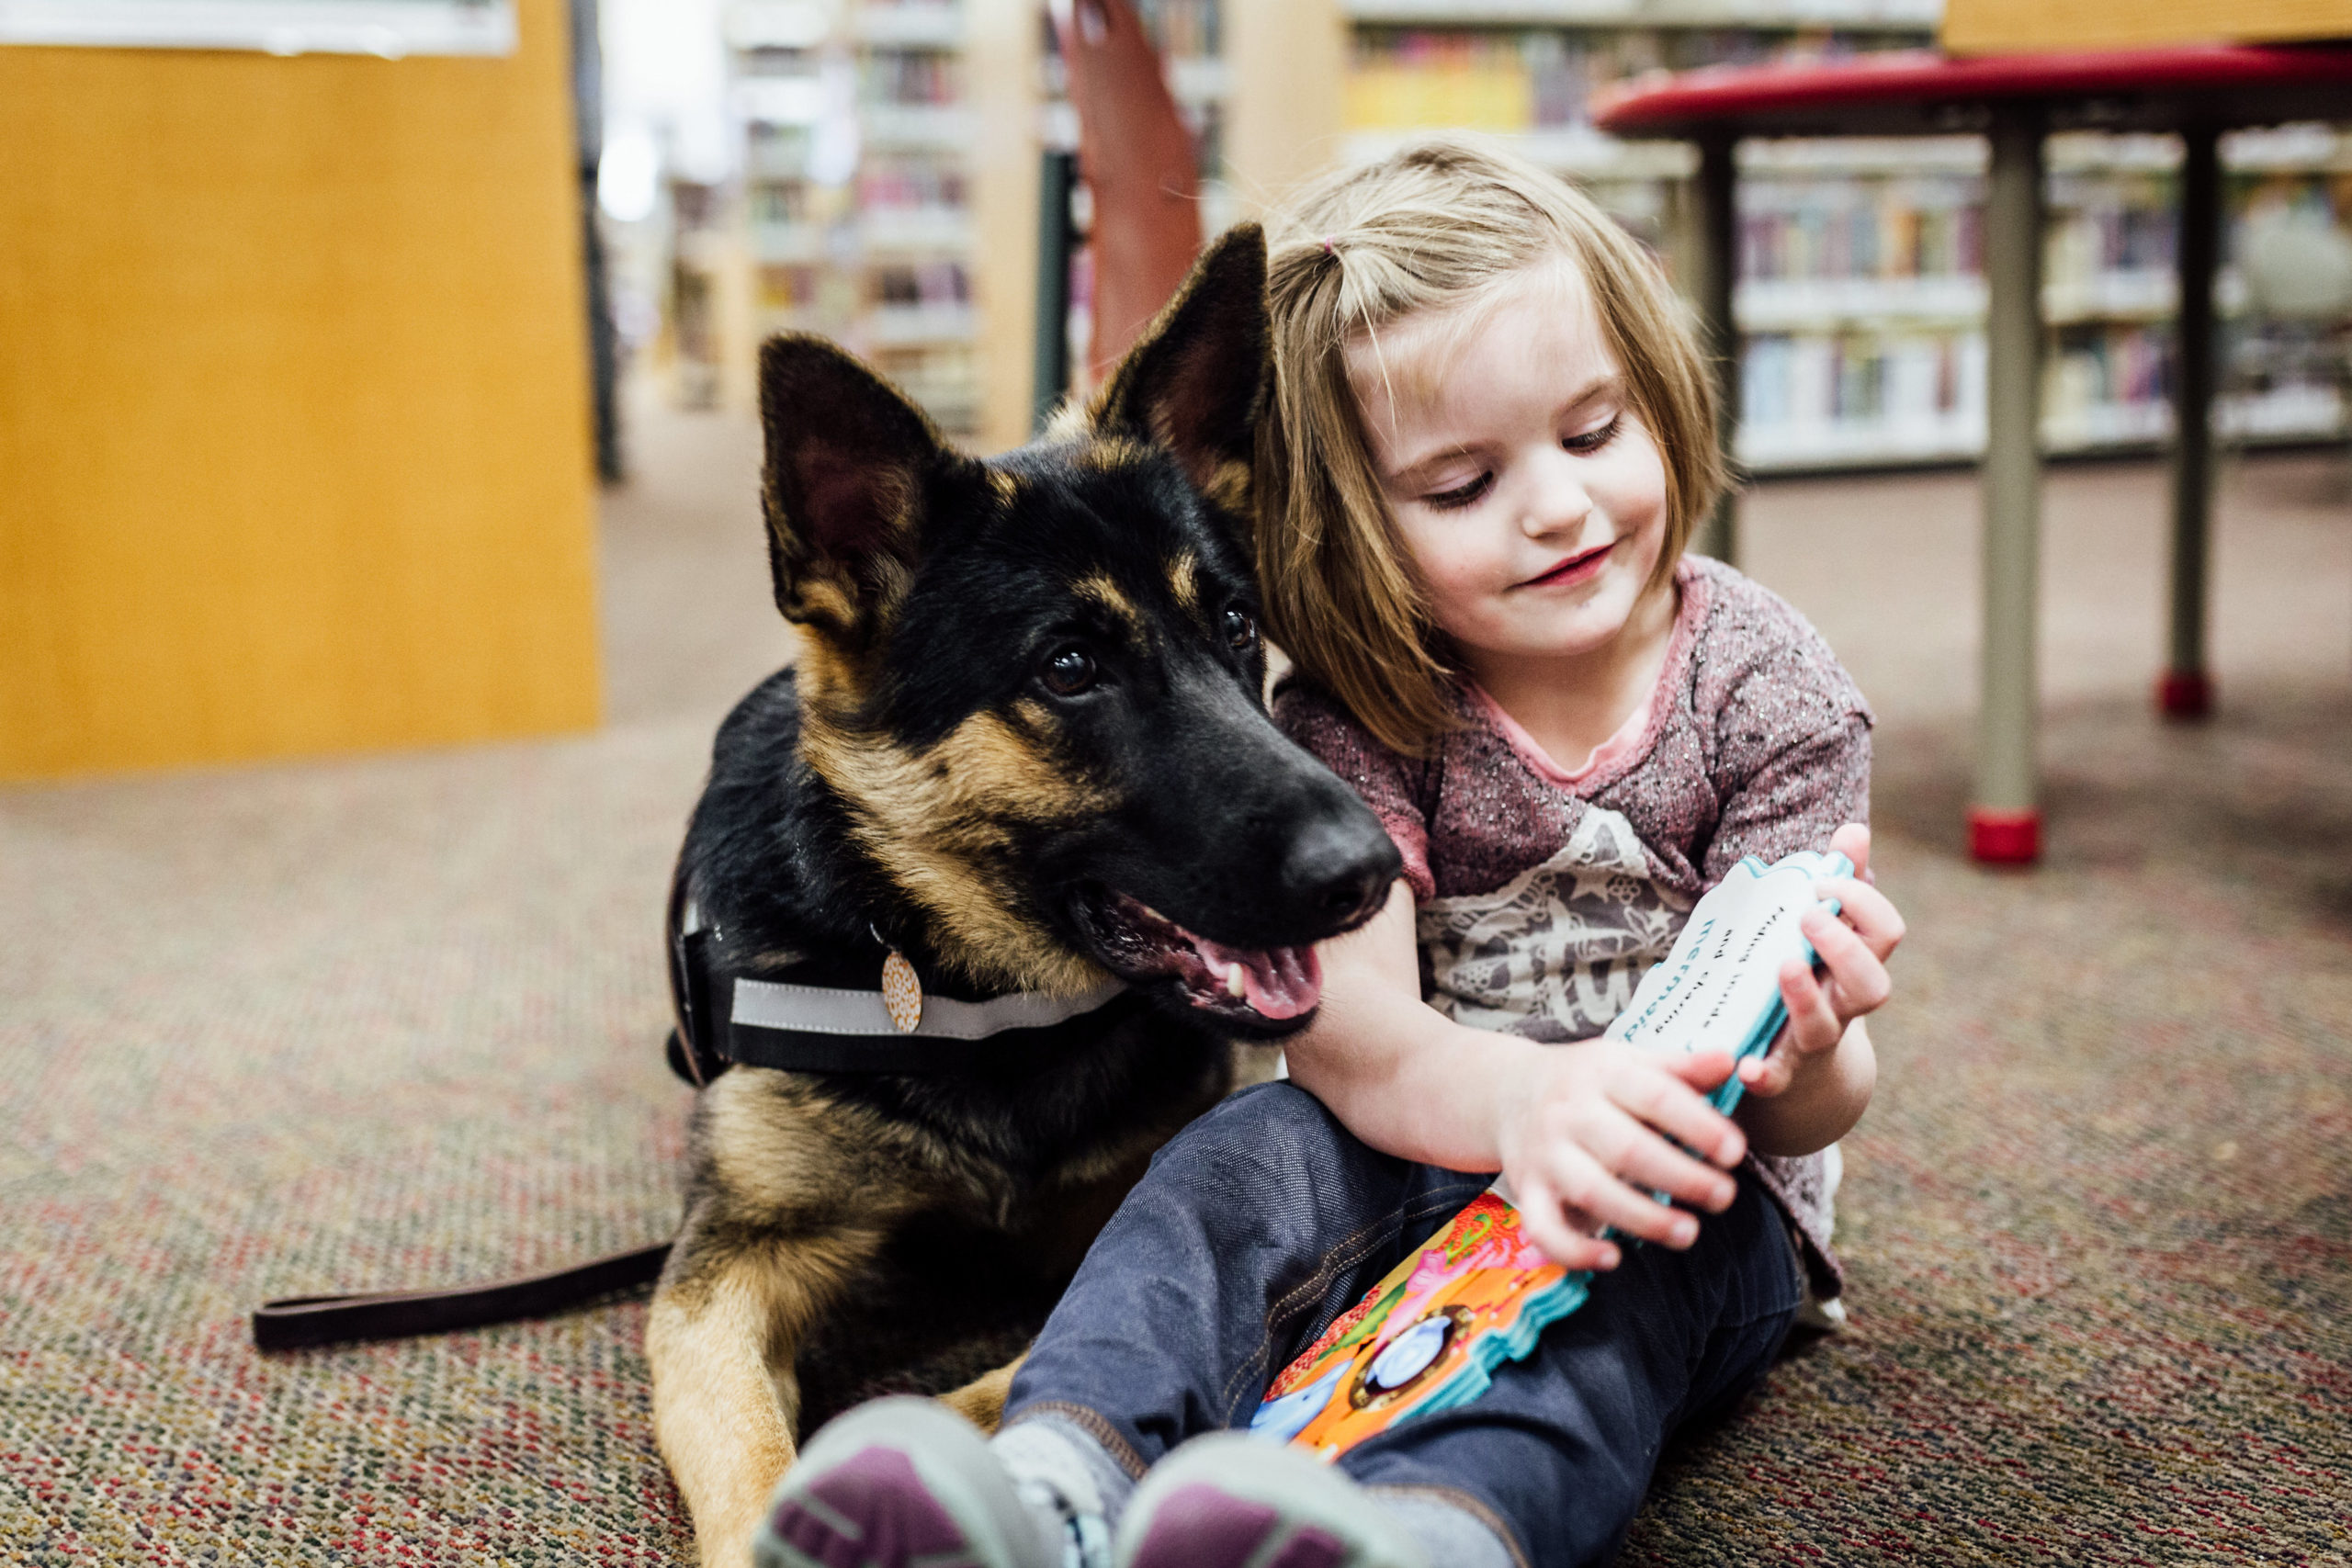 young girl in a library reading a book with her support dog